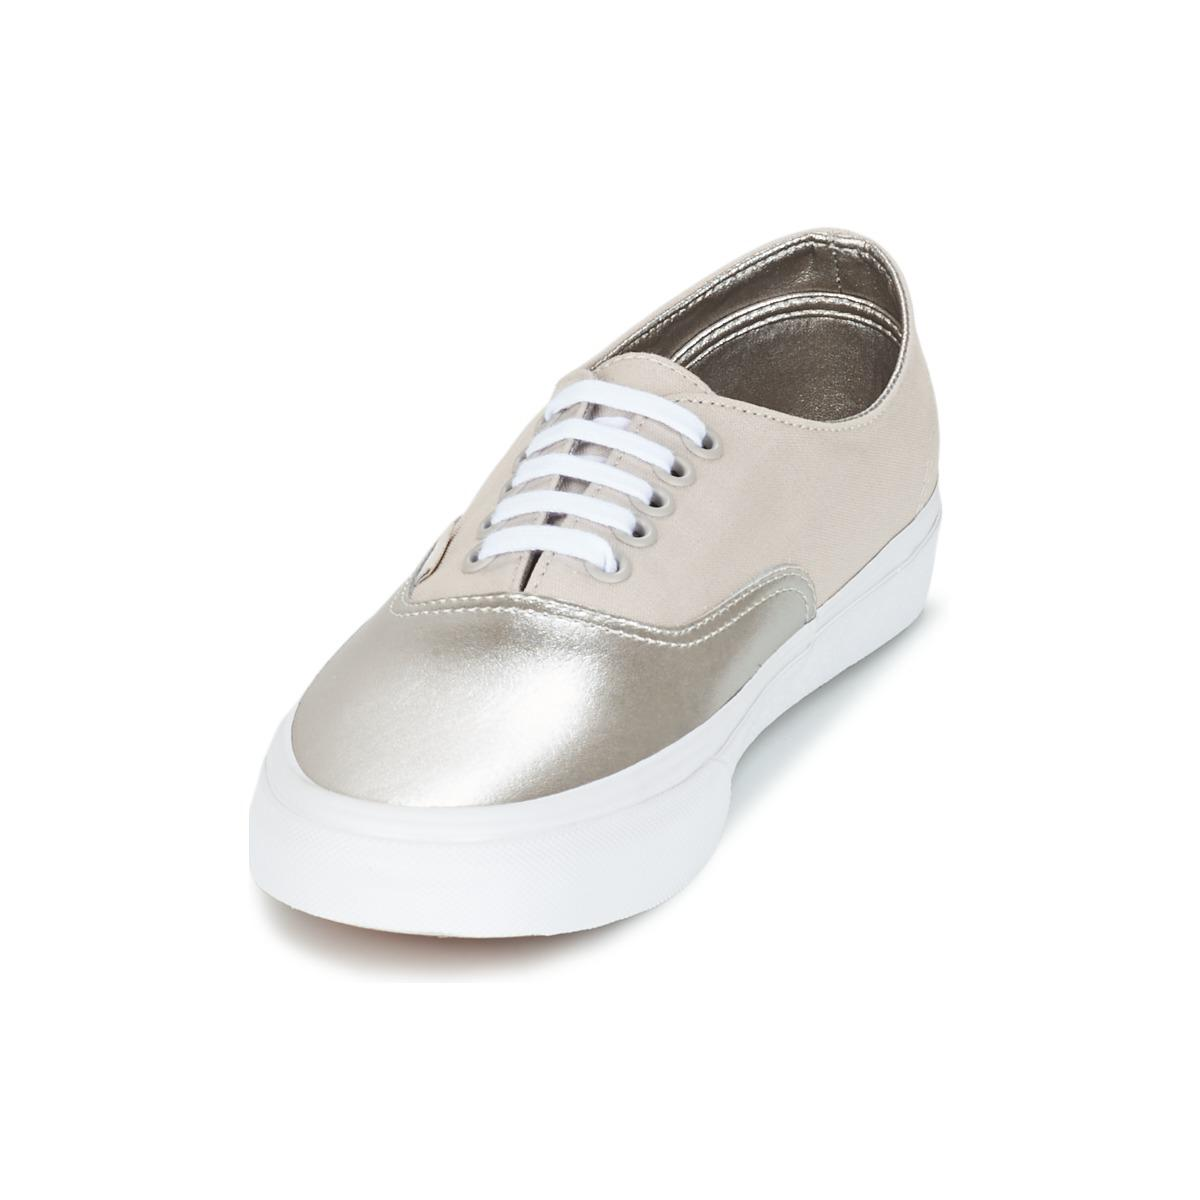 b40e373ef4 Vans - Metallic Authentic Decon Women s Shoes (trainers) In Silver - Lyst.  View fullscreen